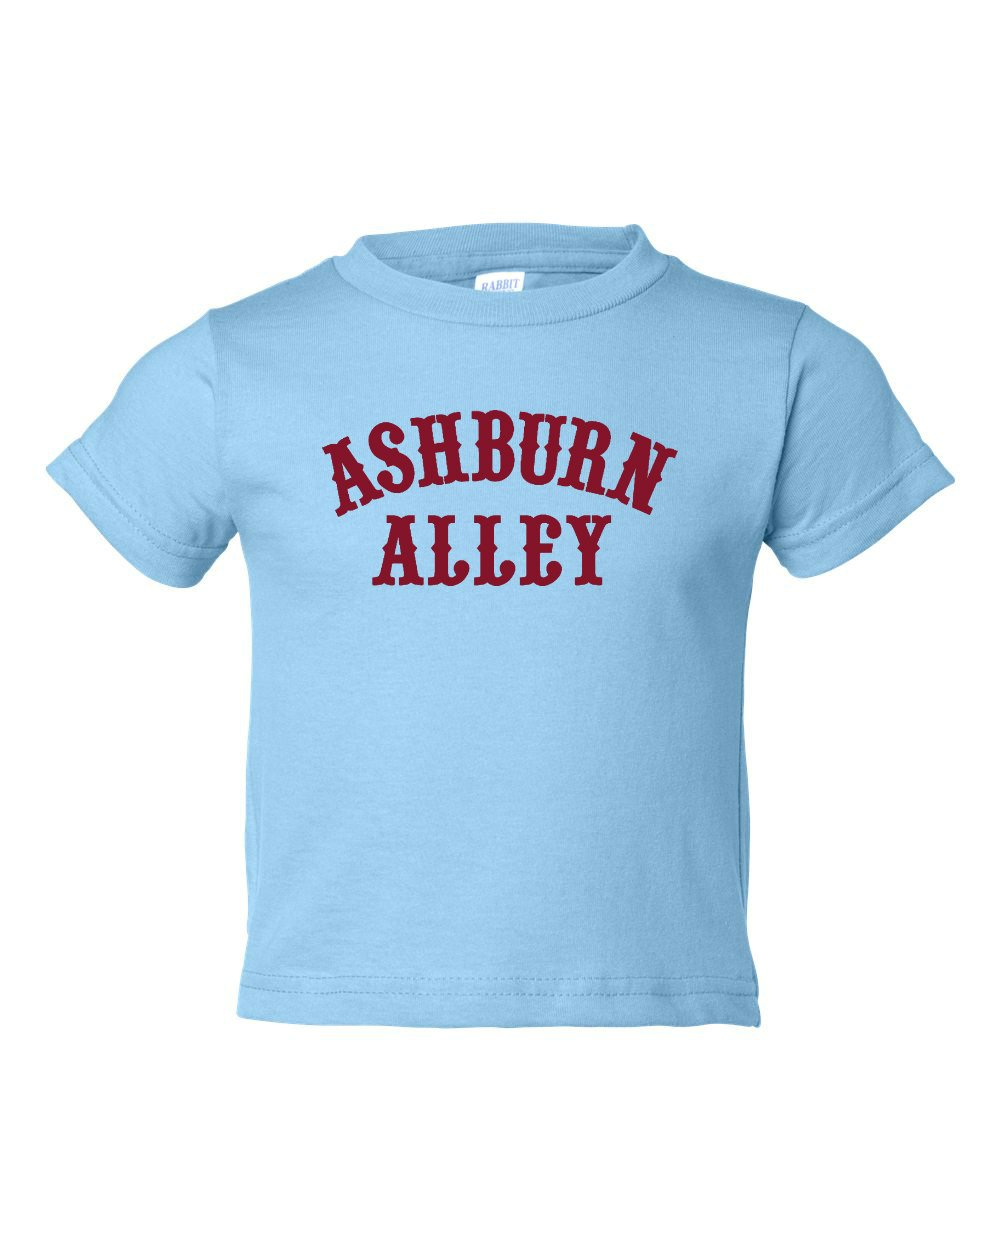 Ashburn Alley TODDLER T-Shirt